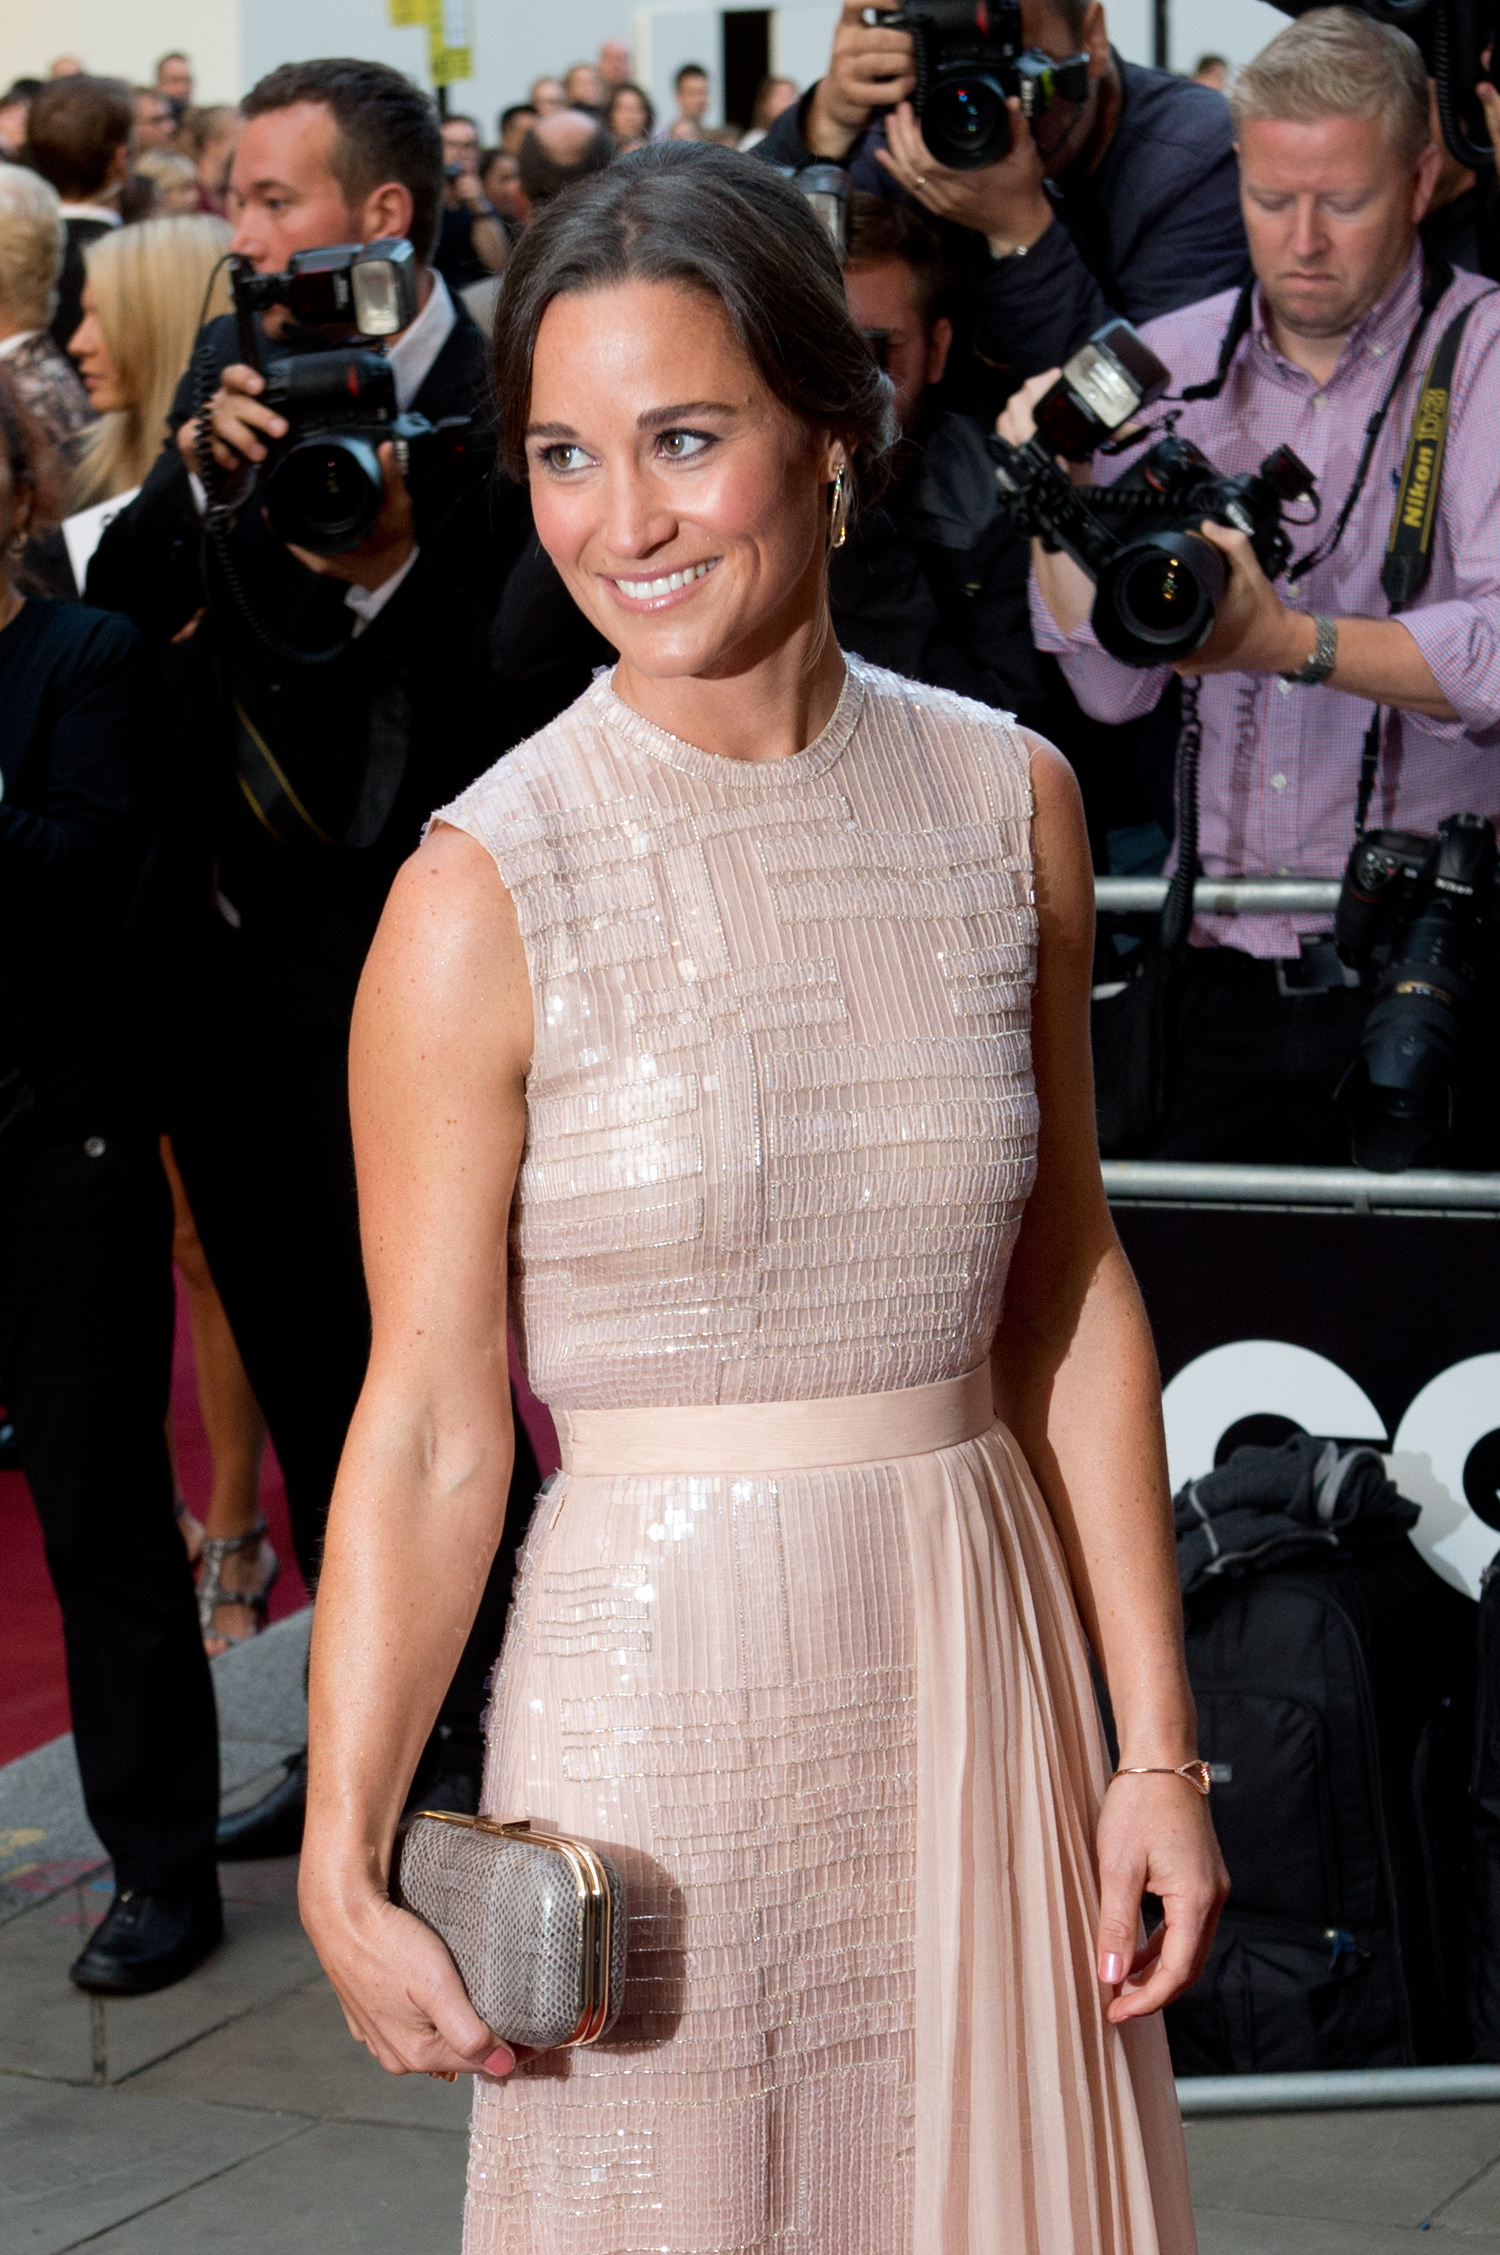 Pippa Middleton at The GQ Men of the Year Awards at the Royal Opera House in London (WENN.com)